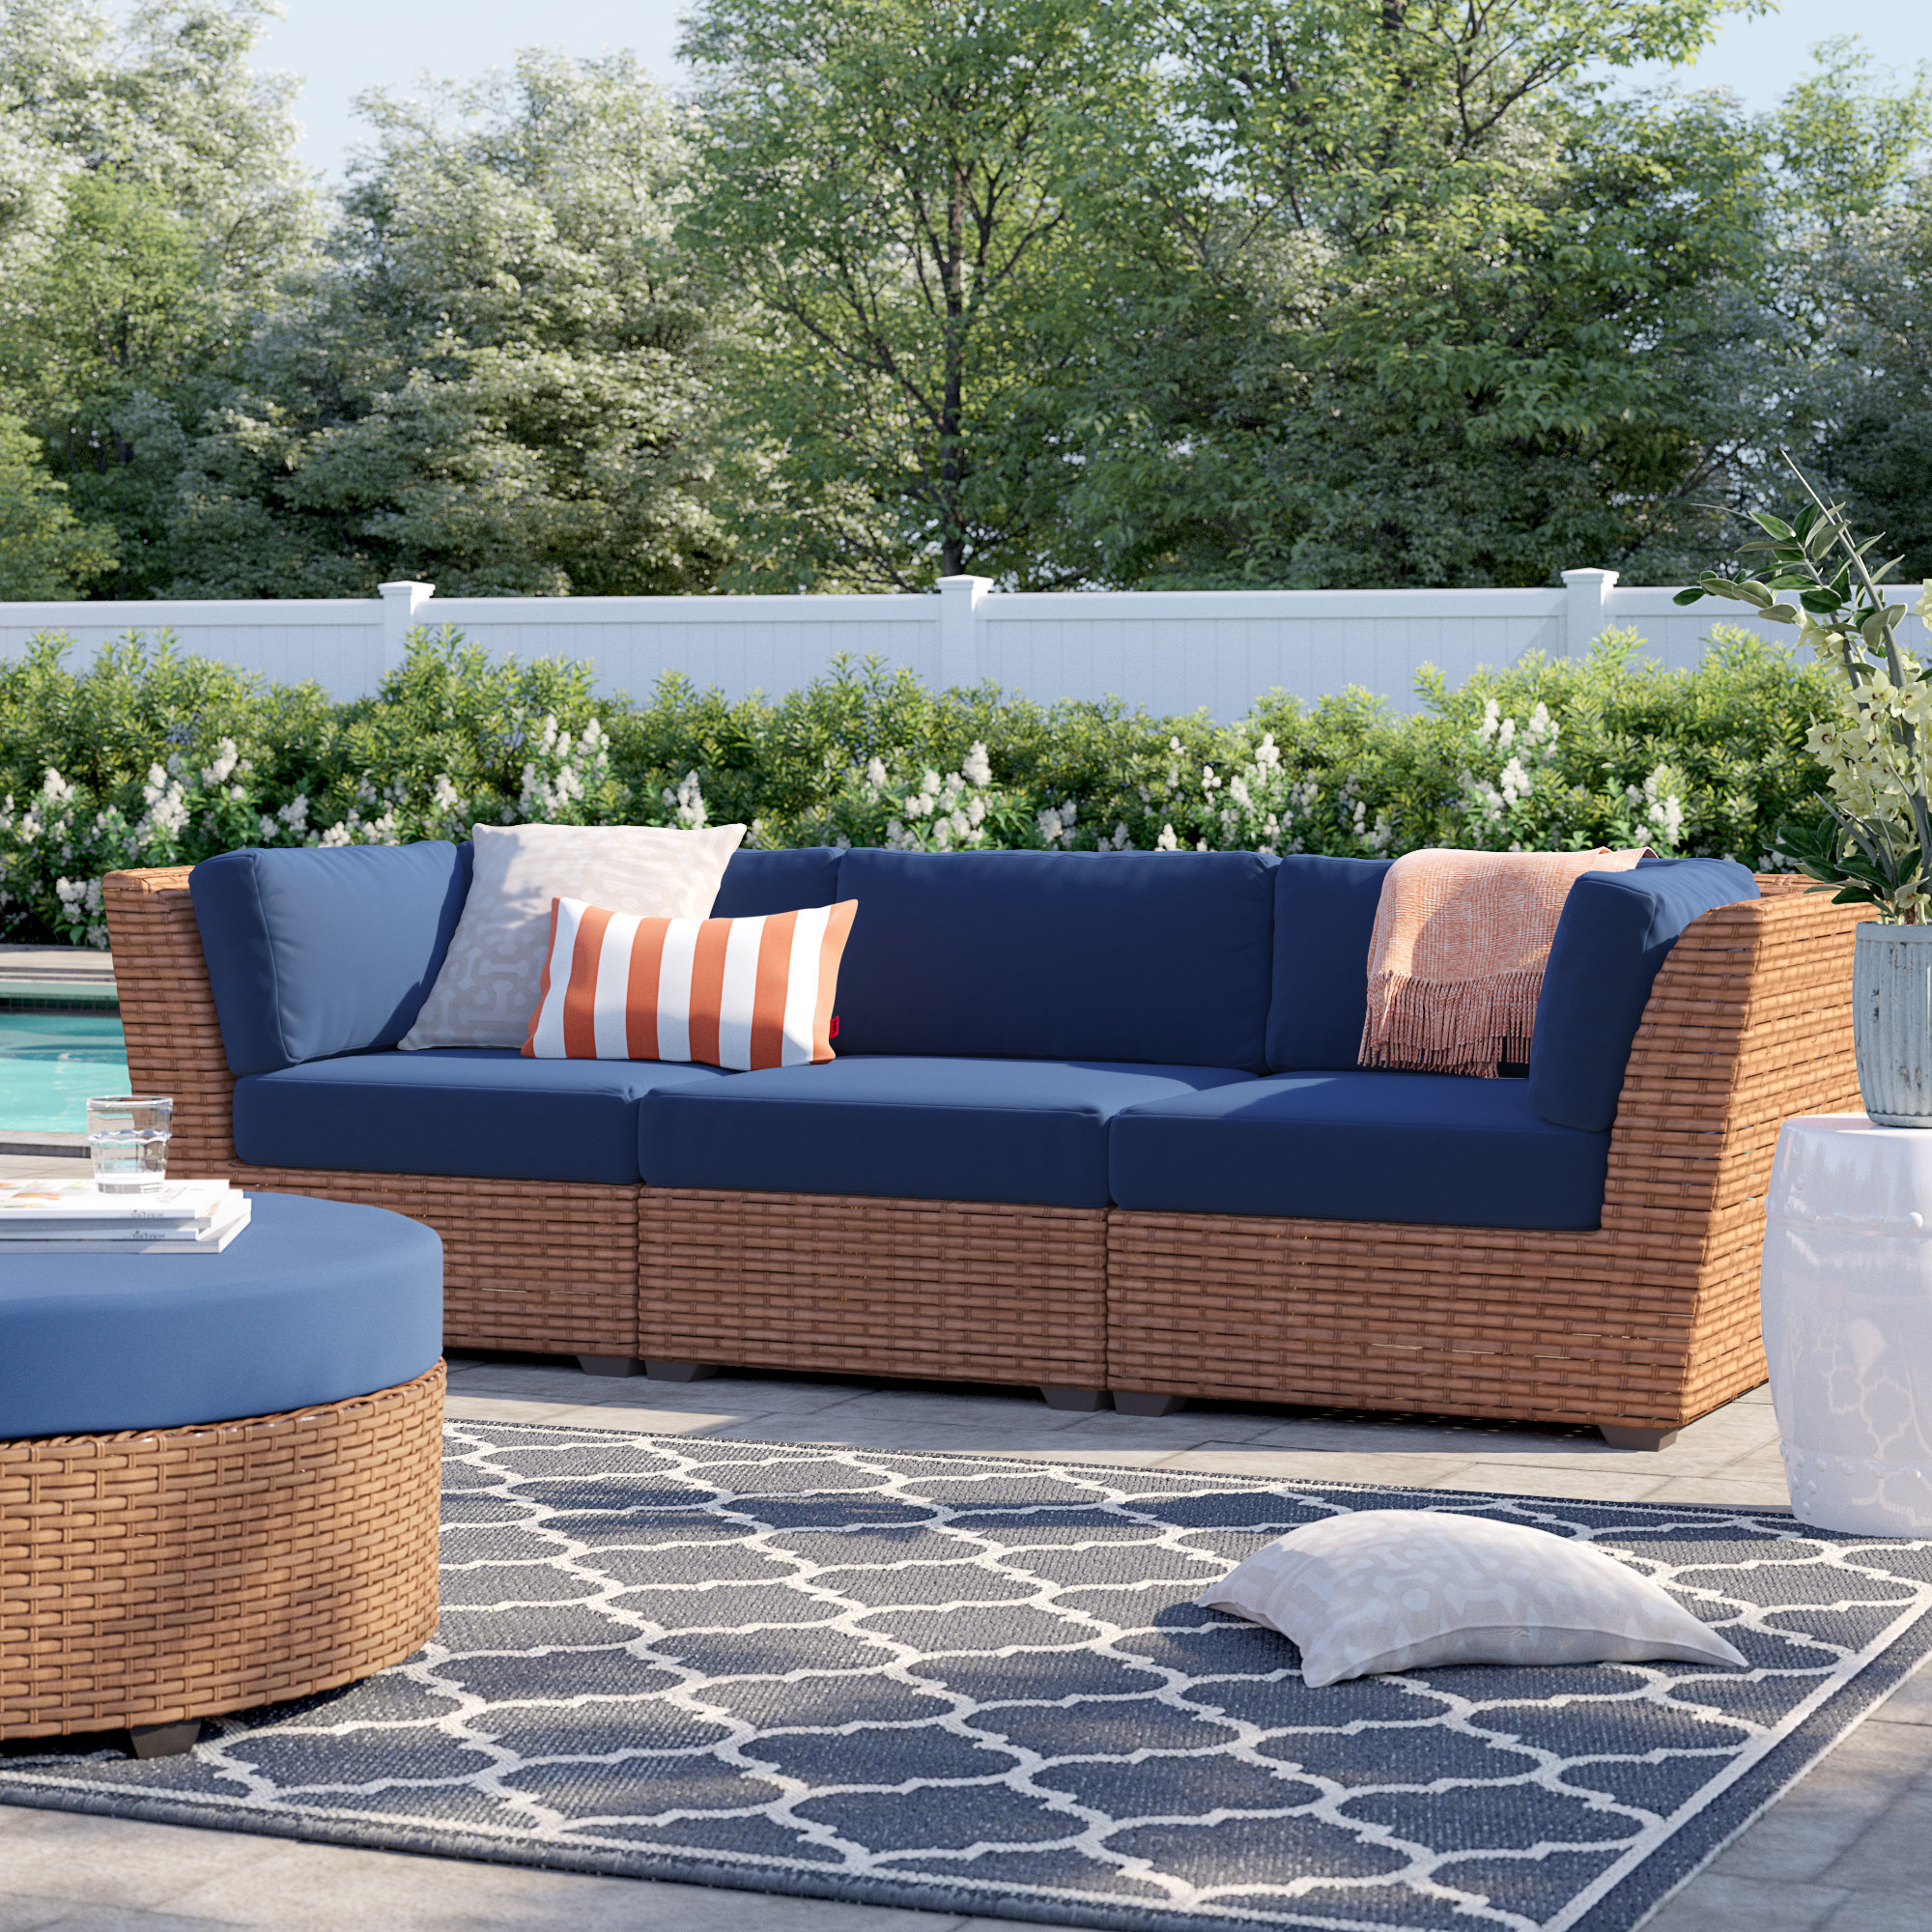 Waterbury Curved Armless Sofa With Cushions Inside Current Waterbury Patio Sofa With Cushions (View 16 of 20)